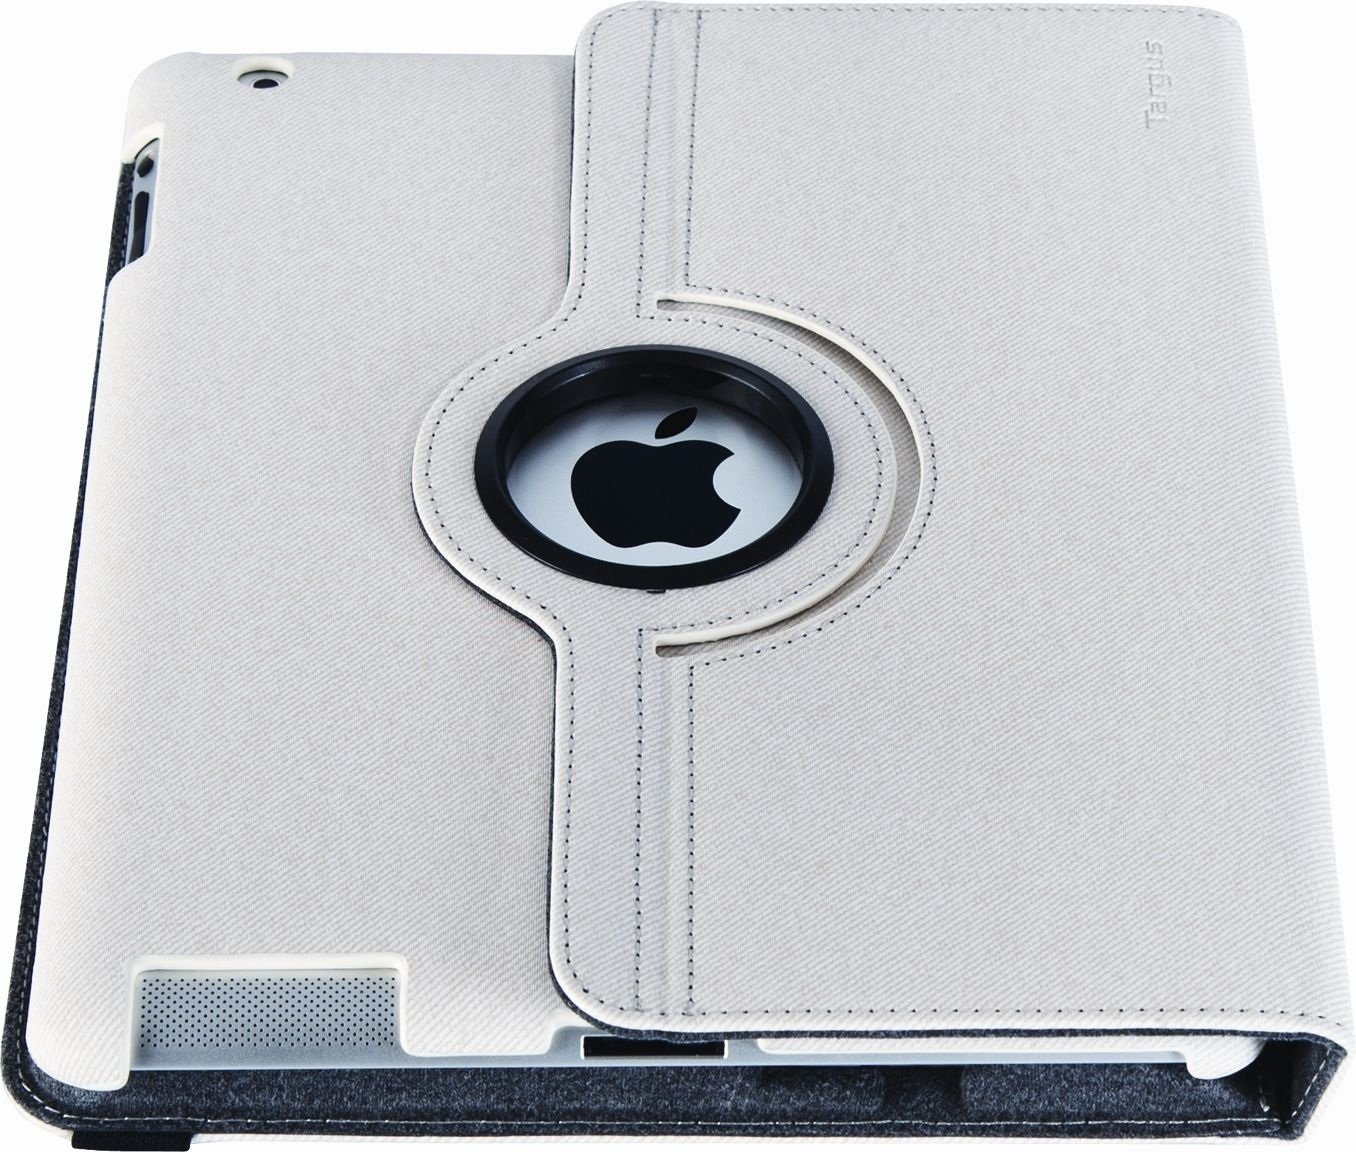 Targus Versavu Rotating Keyboard Case and Stand for iPad 3 and 4, Bone White (THZ171US) by Targus (Image #11)